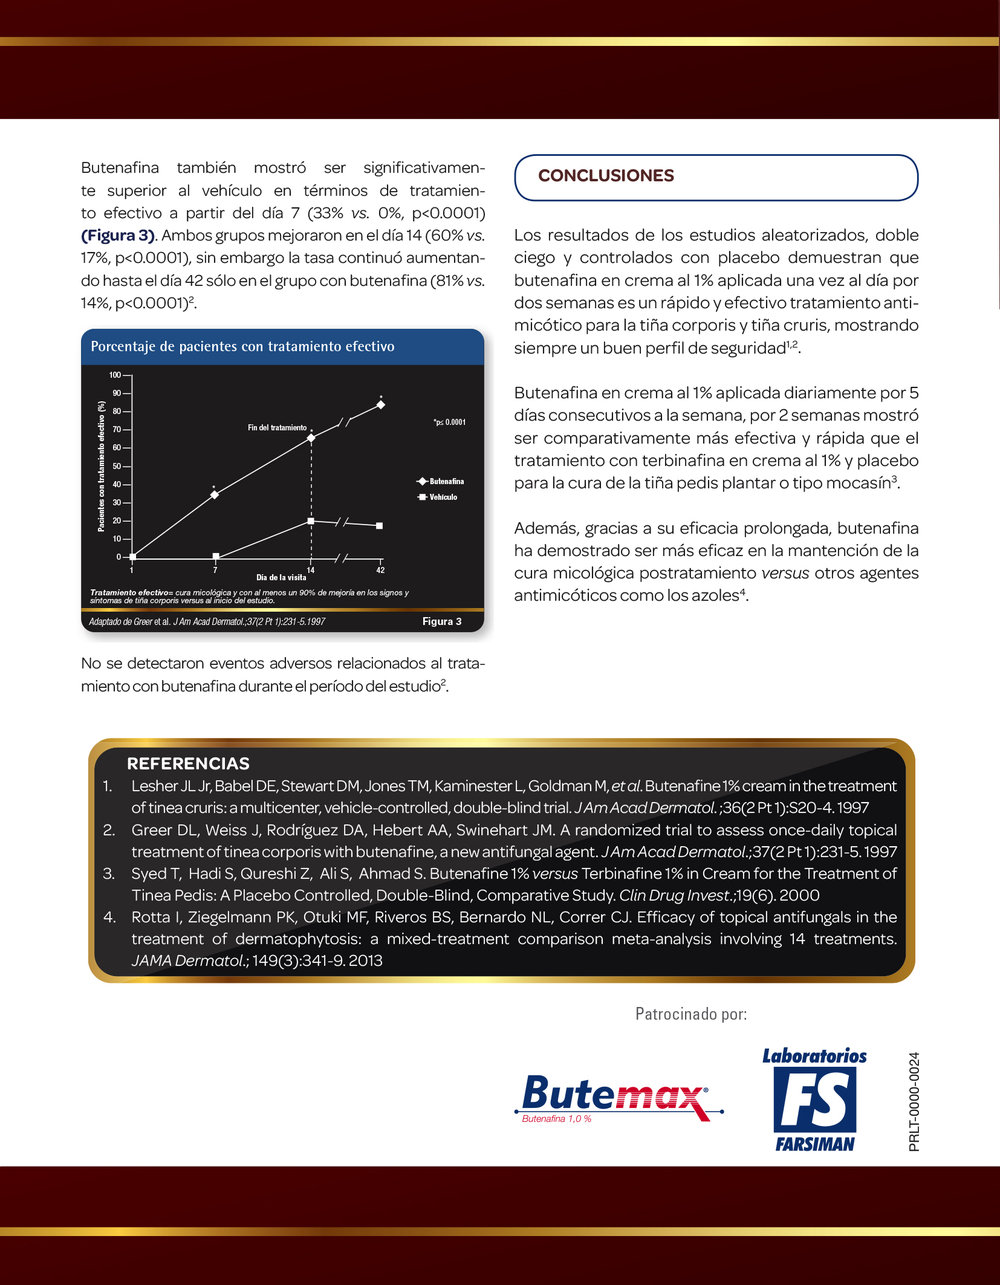 Butemax_Documento4.jpg